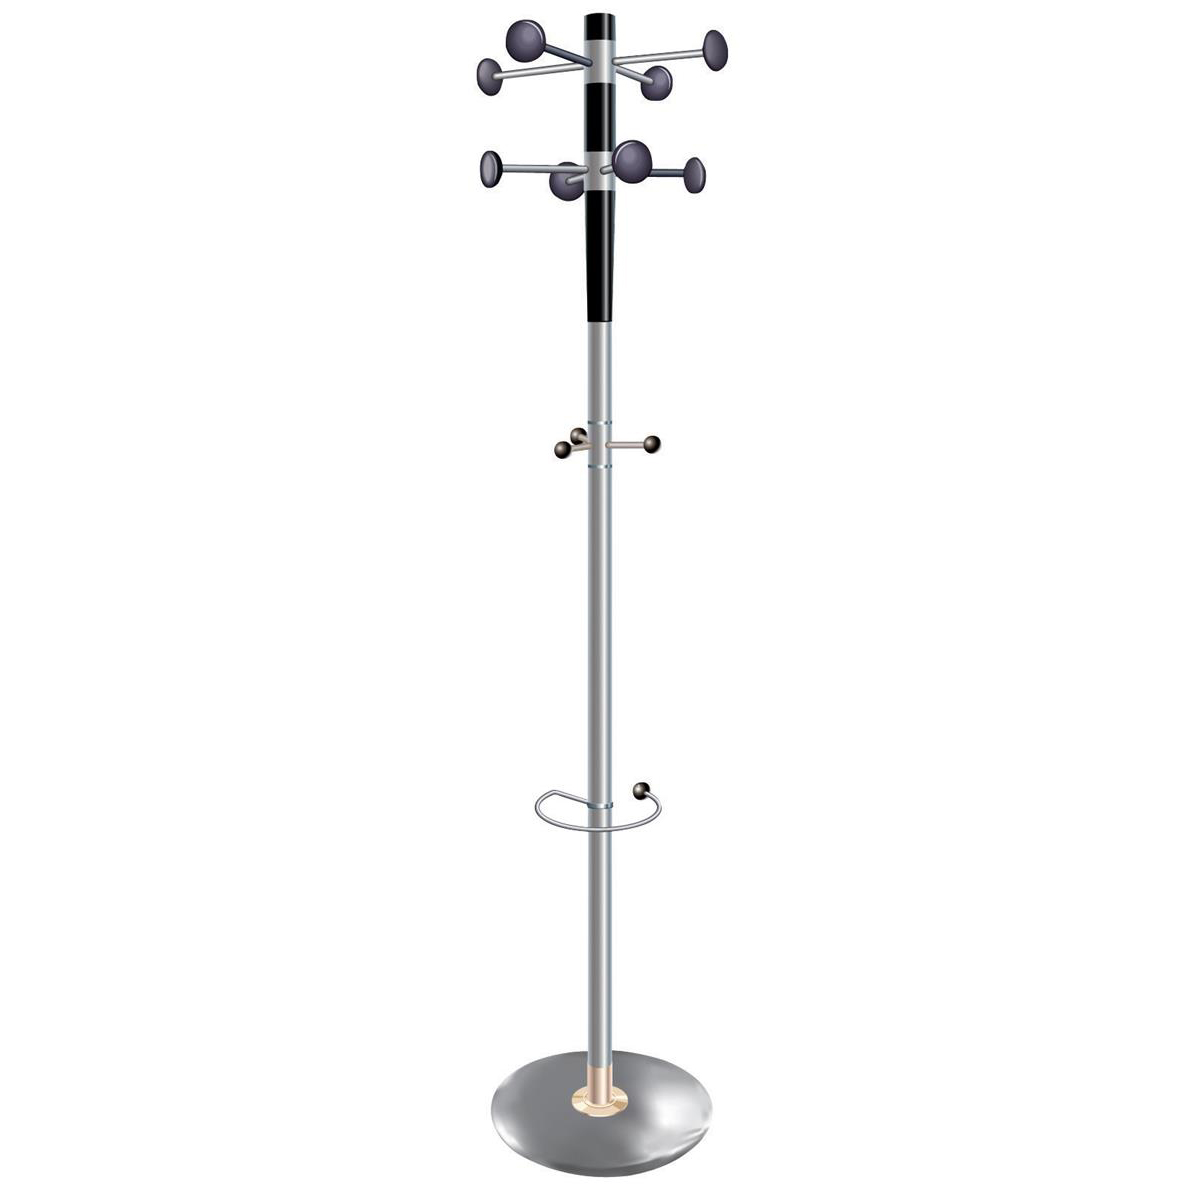 Business Decorative Coat Stand Solid Head Steel Post Umbrella Stand Double Pegs Grey